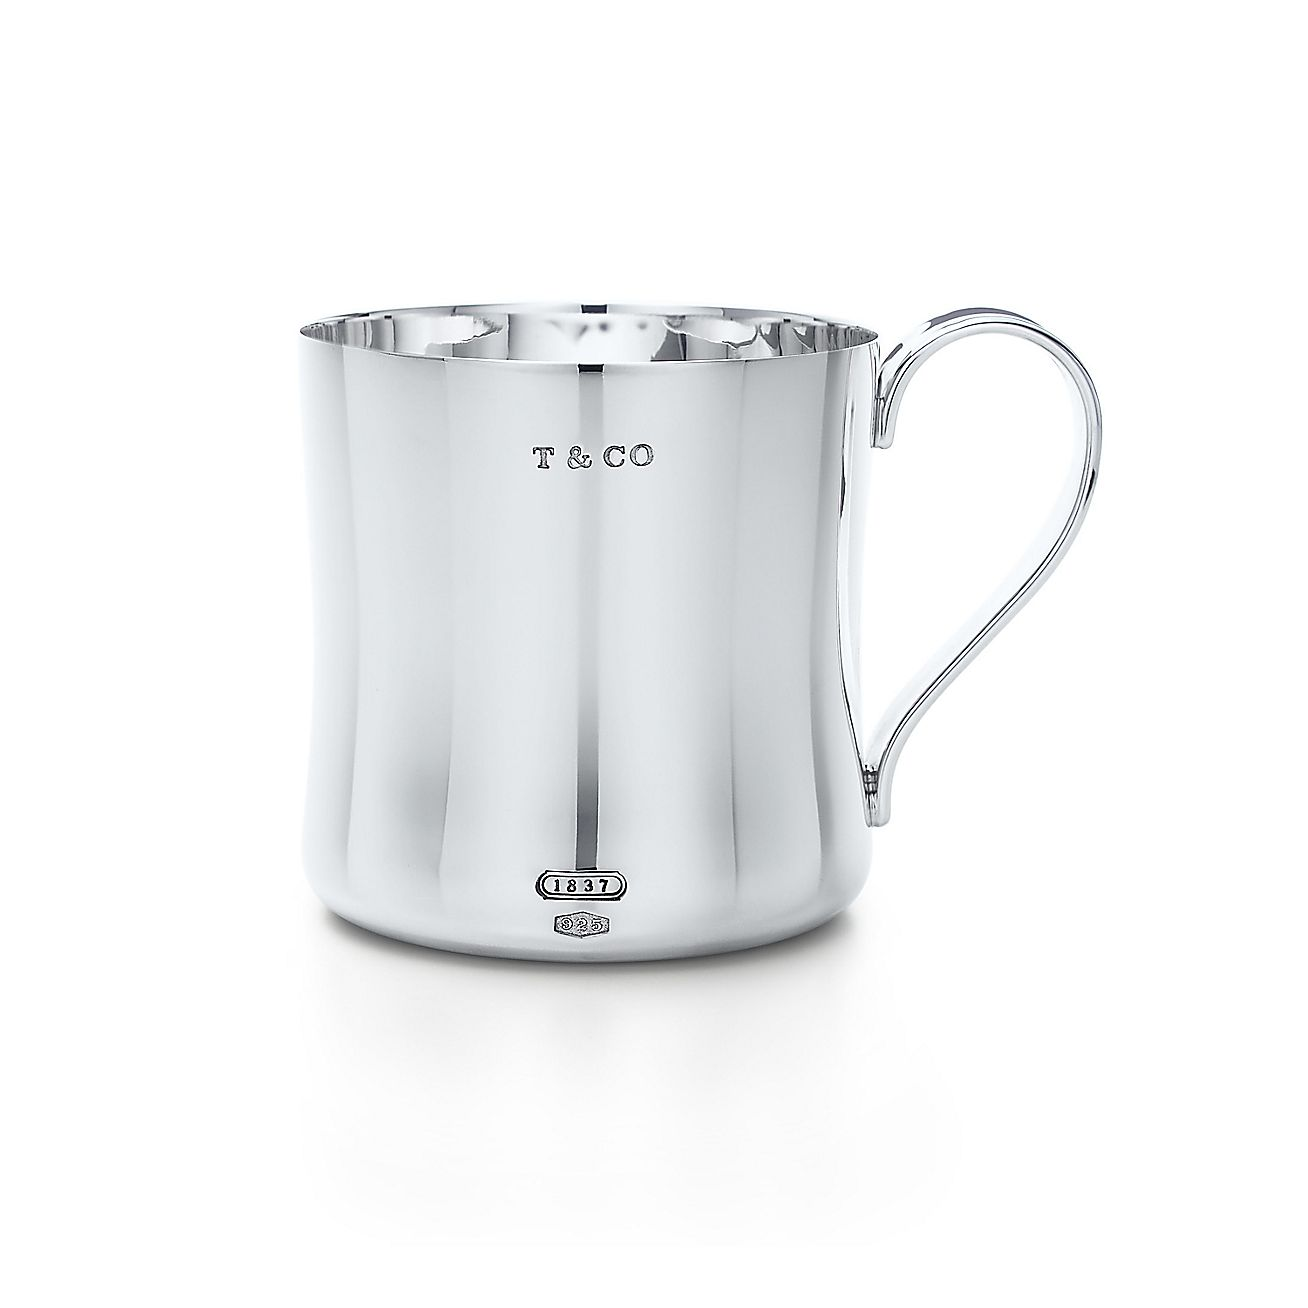 Tiffany Baby Gifts Australia : Tiffany baby cup in sterling silver co